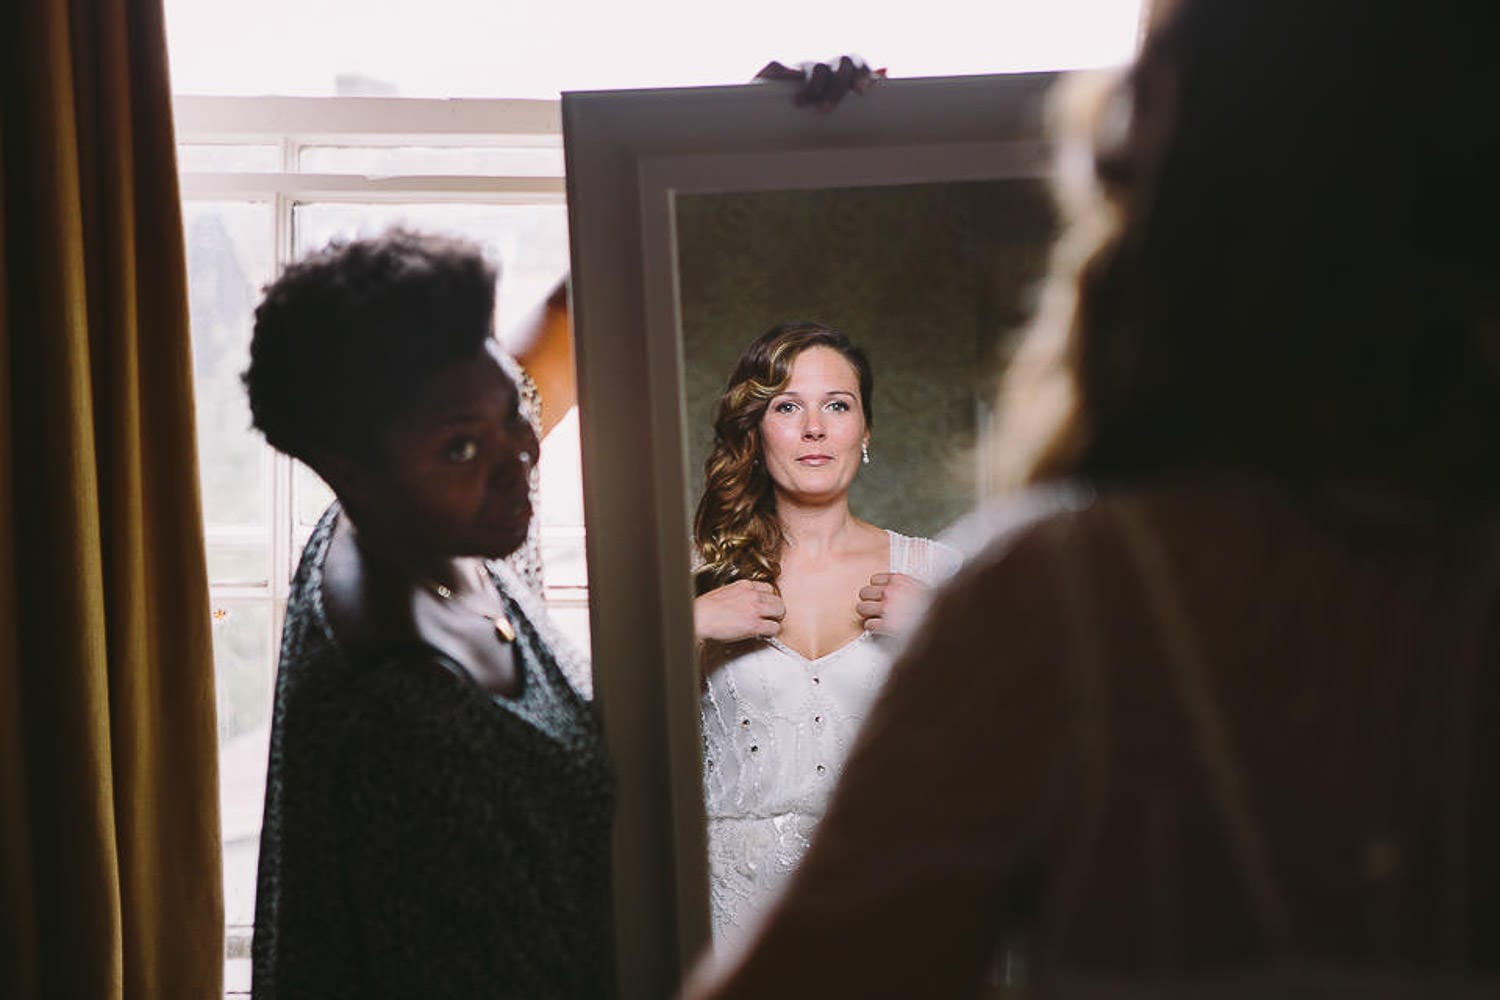 The bride sees herself in the mirror